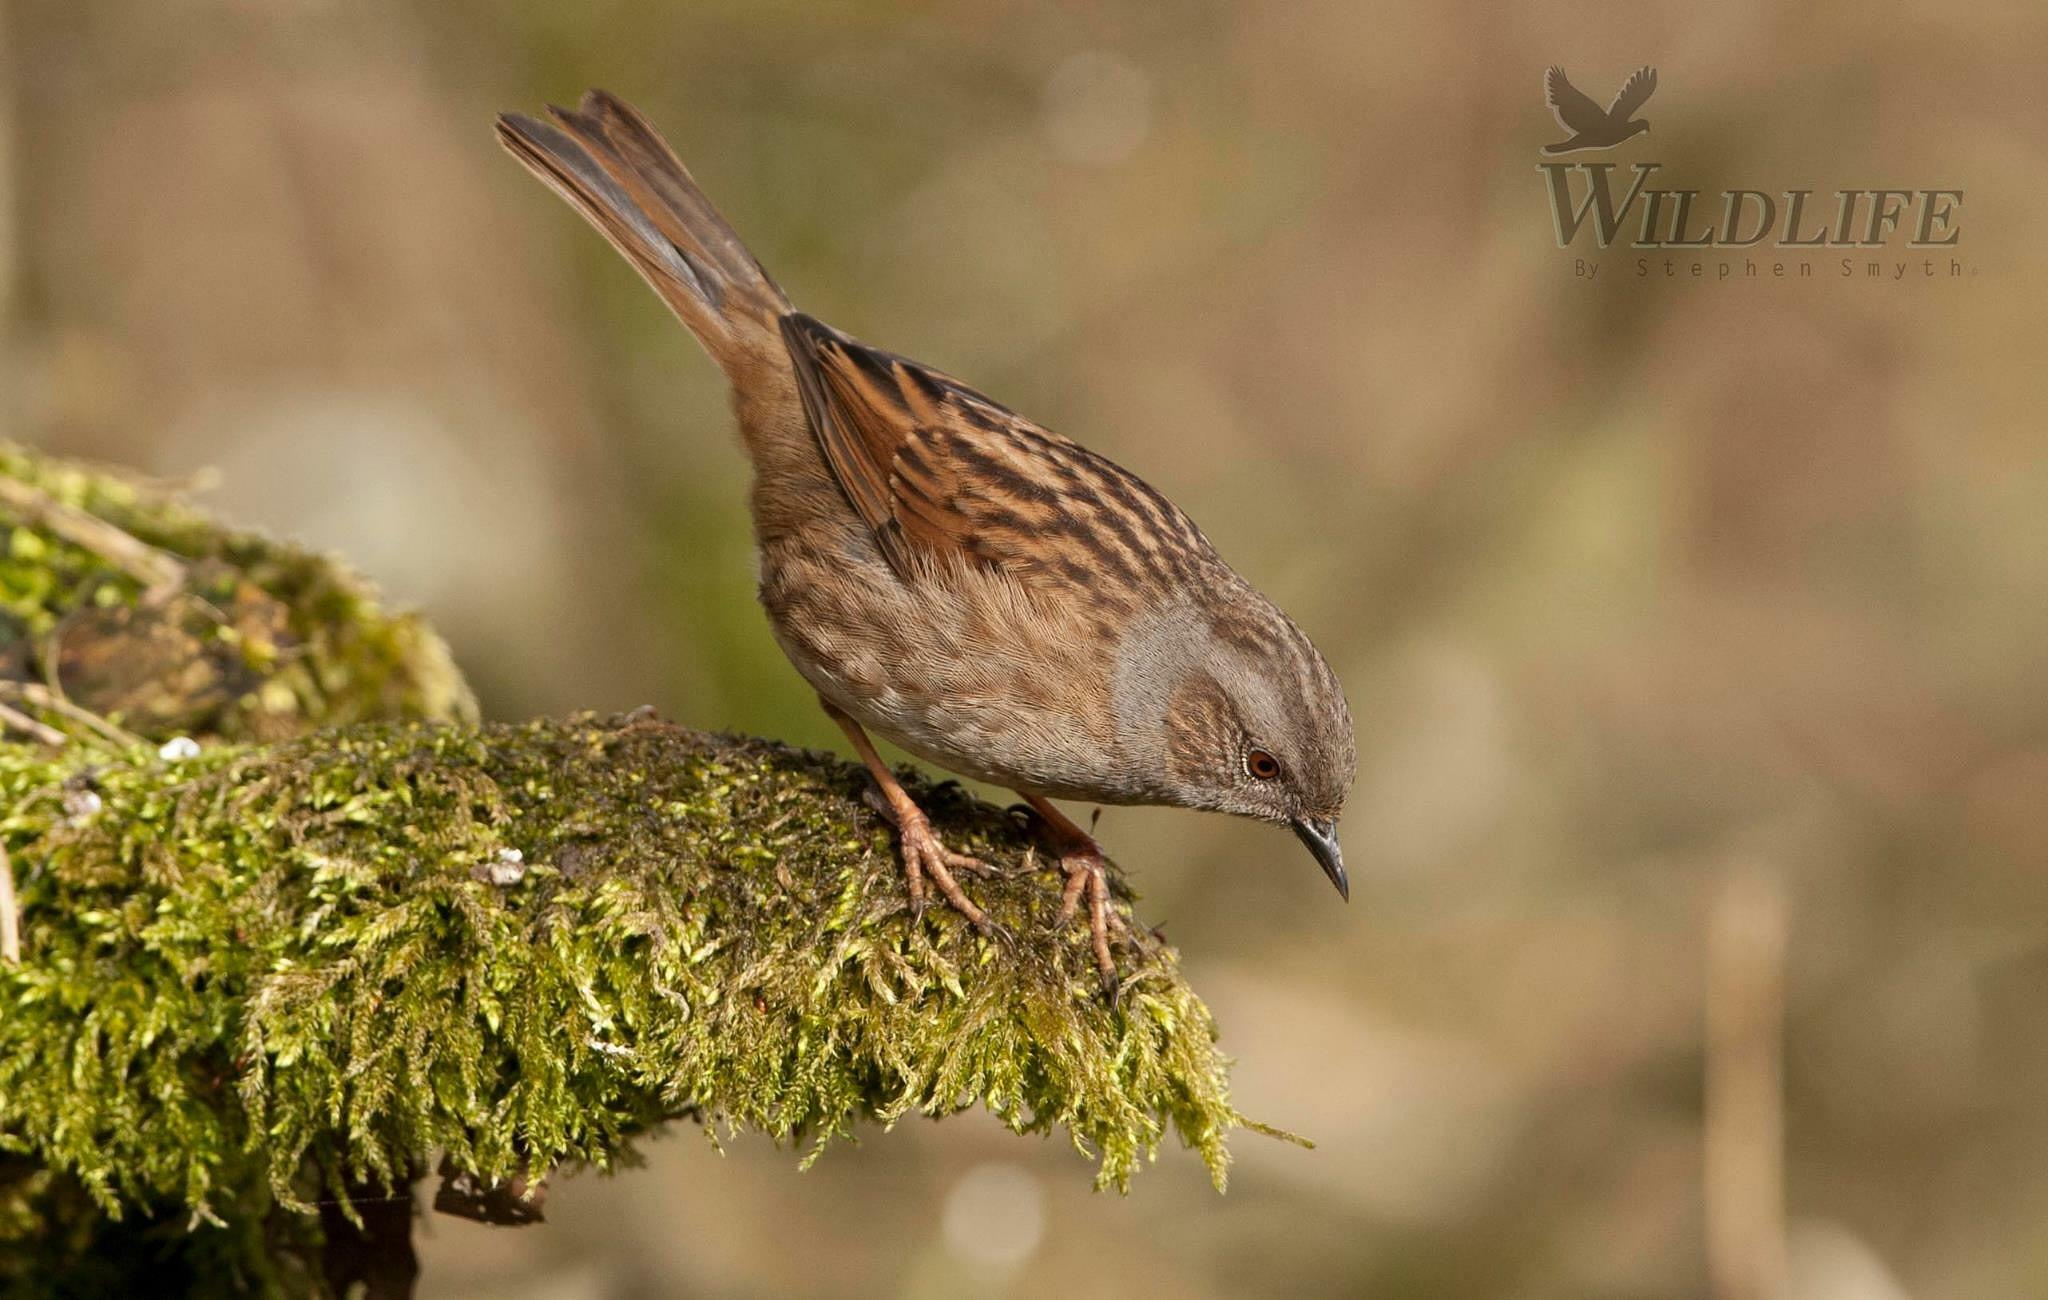 Dunnock by Stephen Smyth